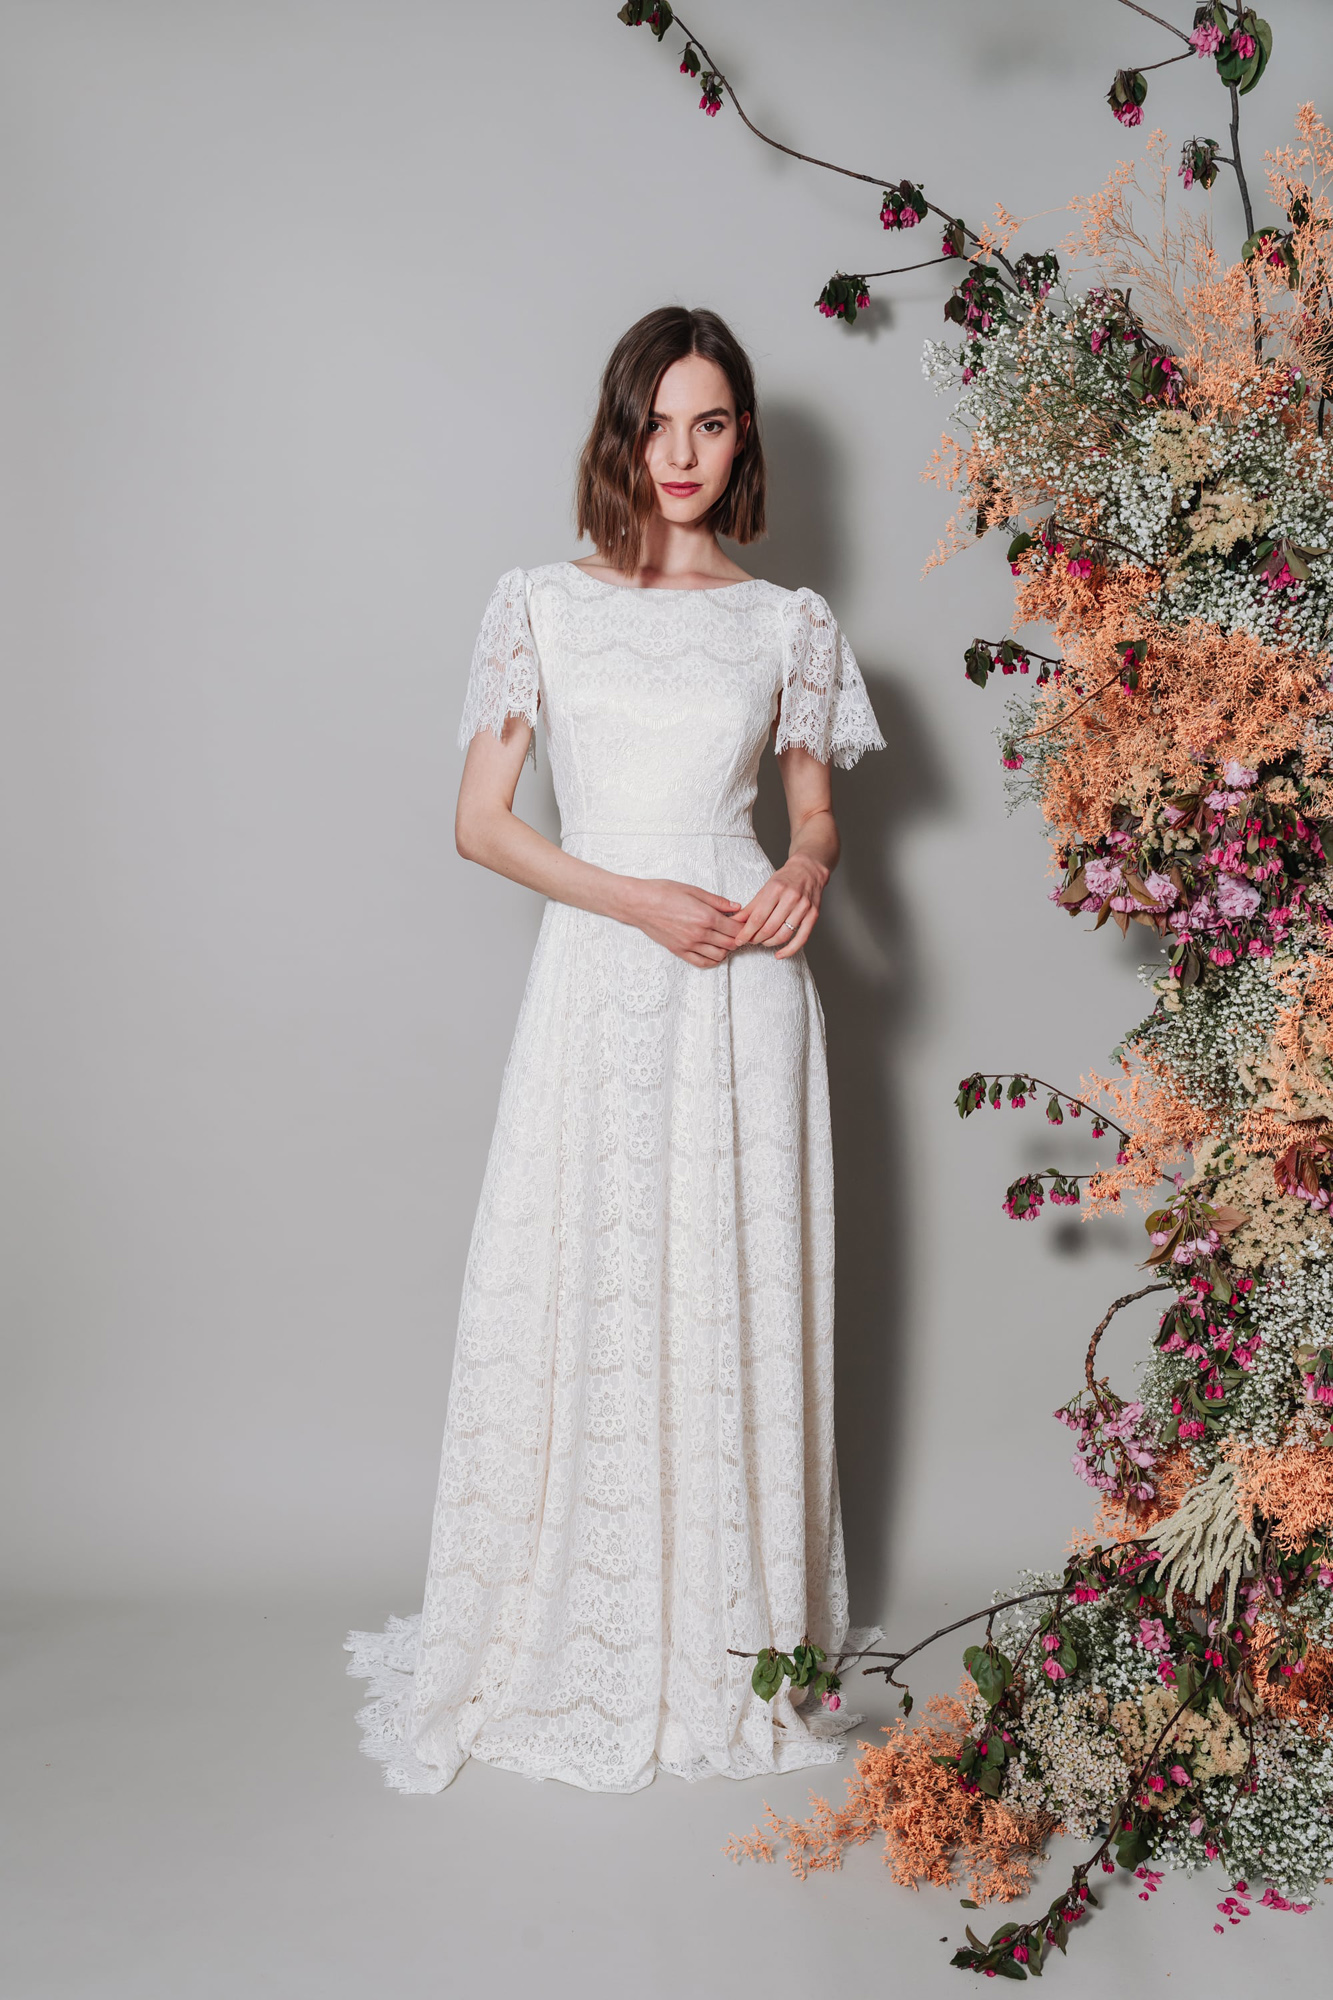 Kate-Beaumont-Sheffield-Bohemian-Dahlia-Panelled-Lace-Silk-Wedding-Gown-4.jpg